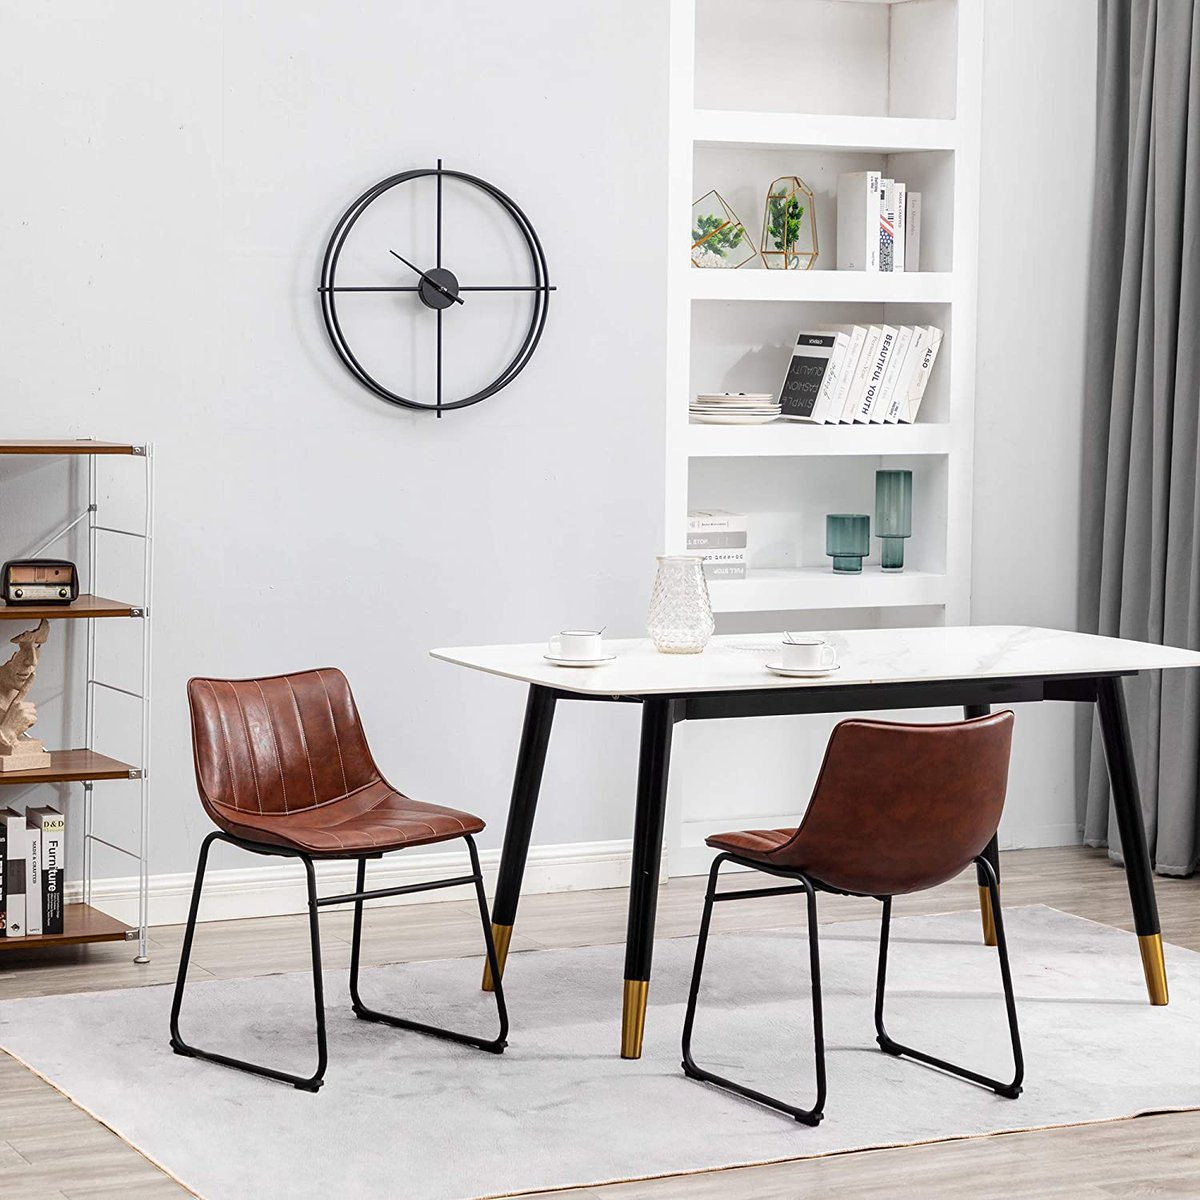 Sharing #PU #Leather #dining #chair #barstools for #home #kitchen #Amazon👉 #metalfurnitures #metalchair #interiordesign #moderndesign #decorationideas #blog #furniture #bar #chair #SundayThoughts #SundayMotivation #SundayWisdom #Sundaymorning